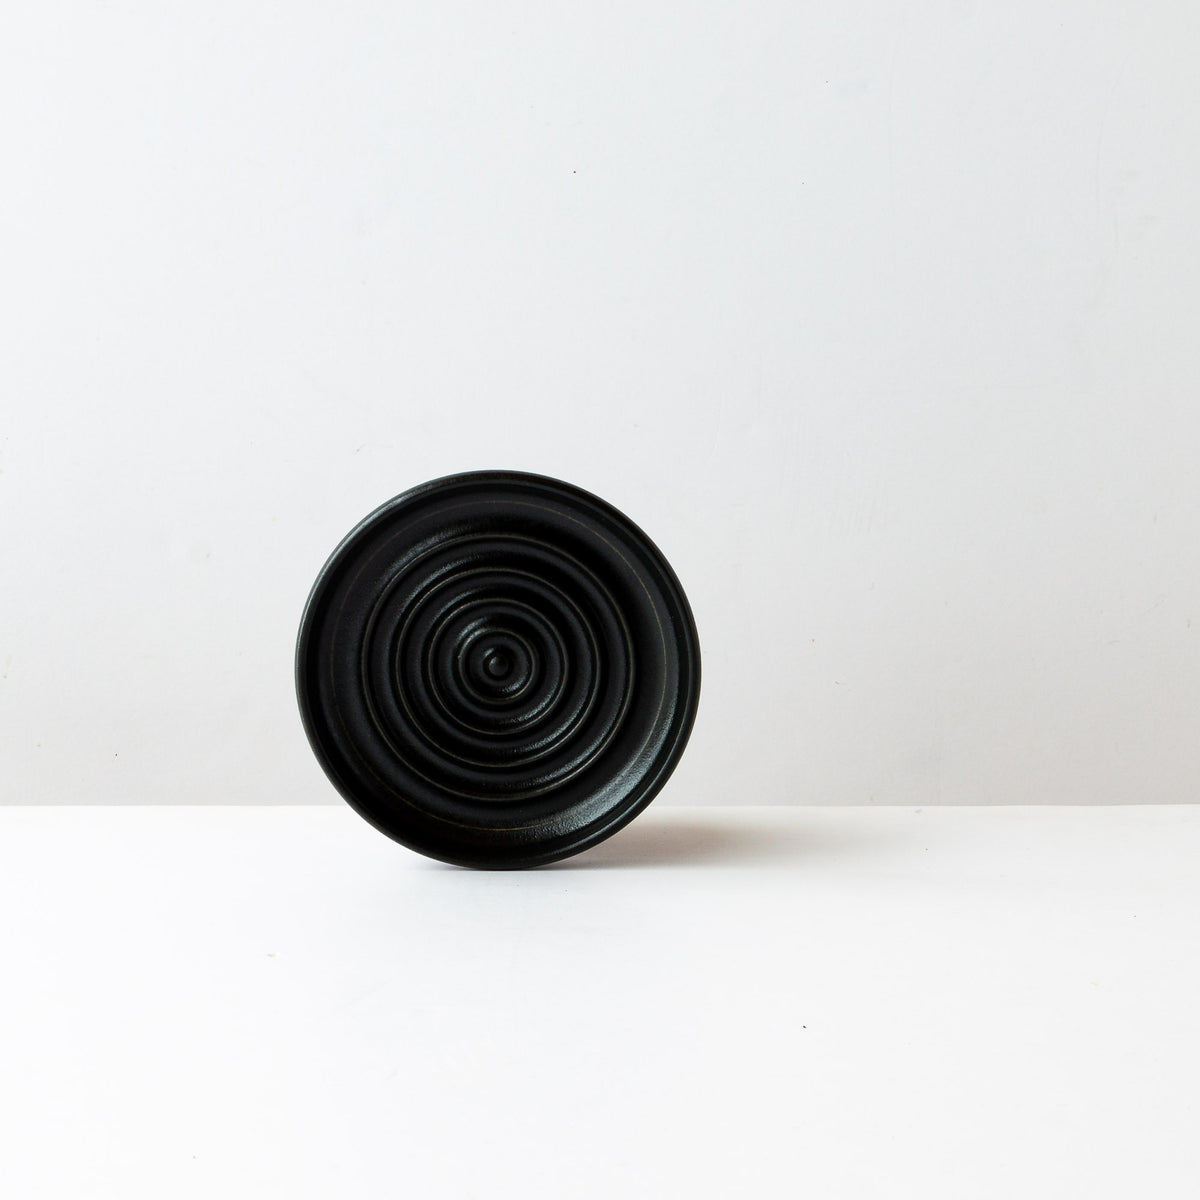 Black Satin Glazed Porcelain Soap Dish